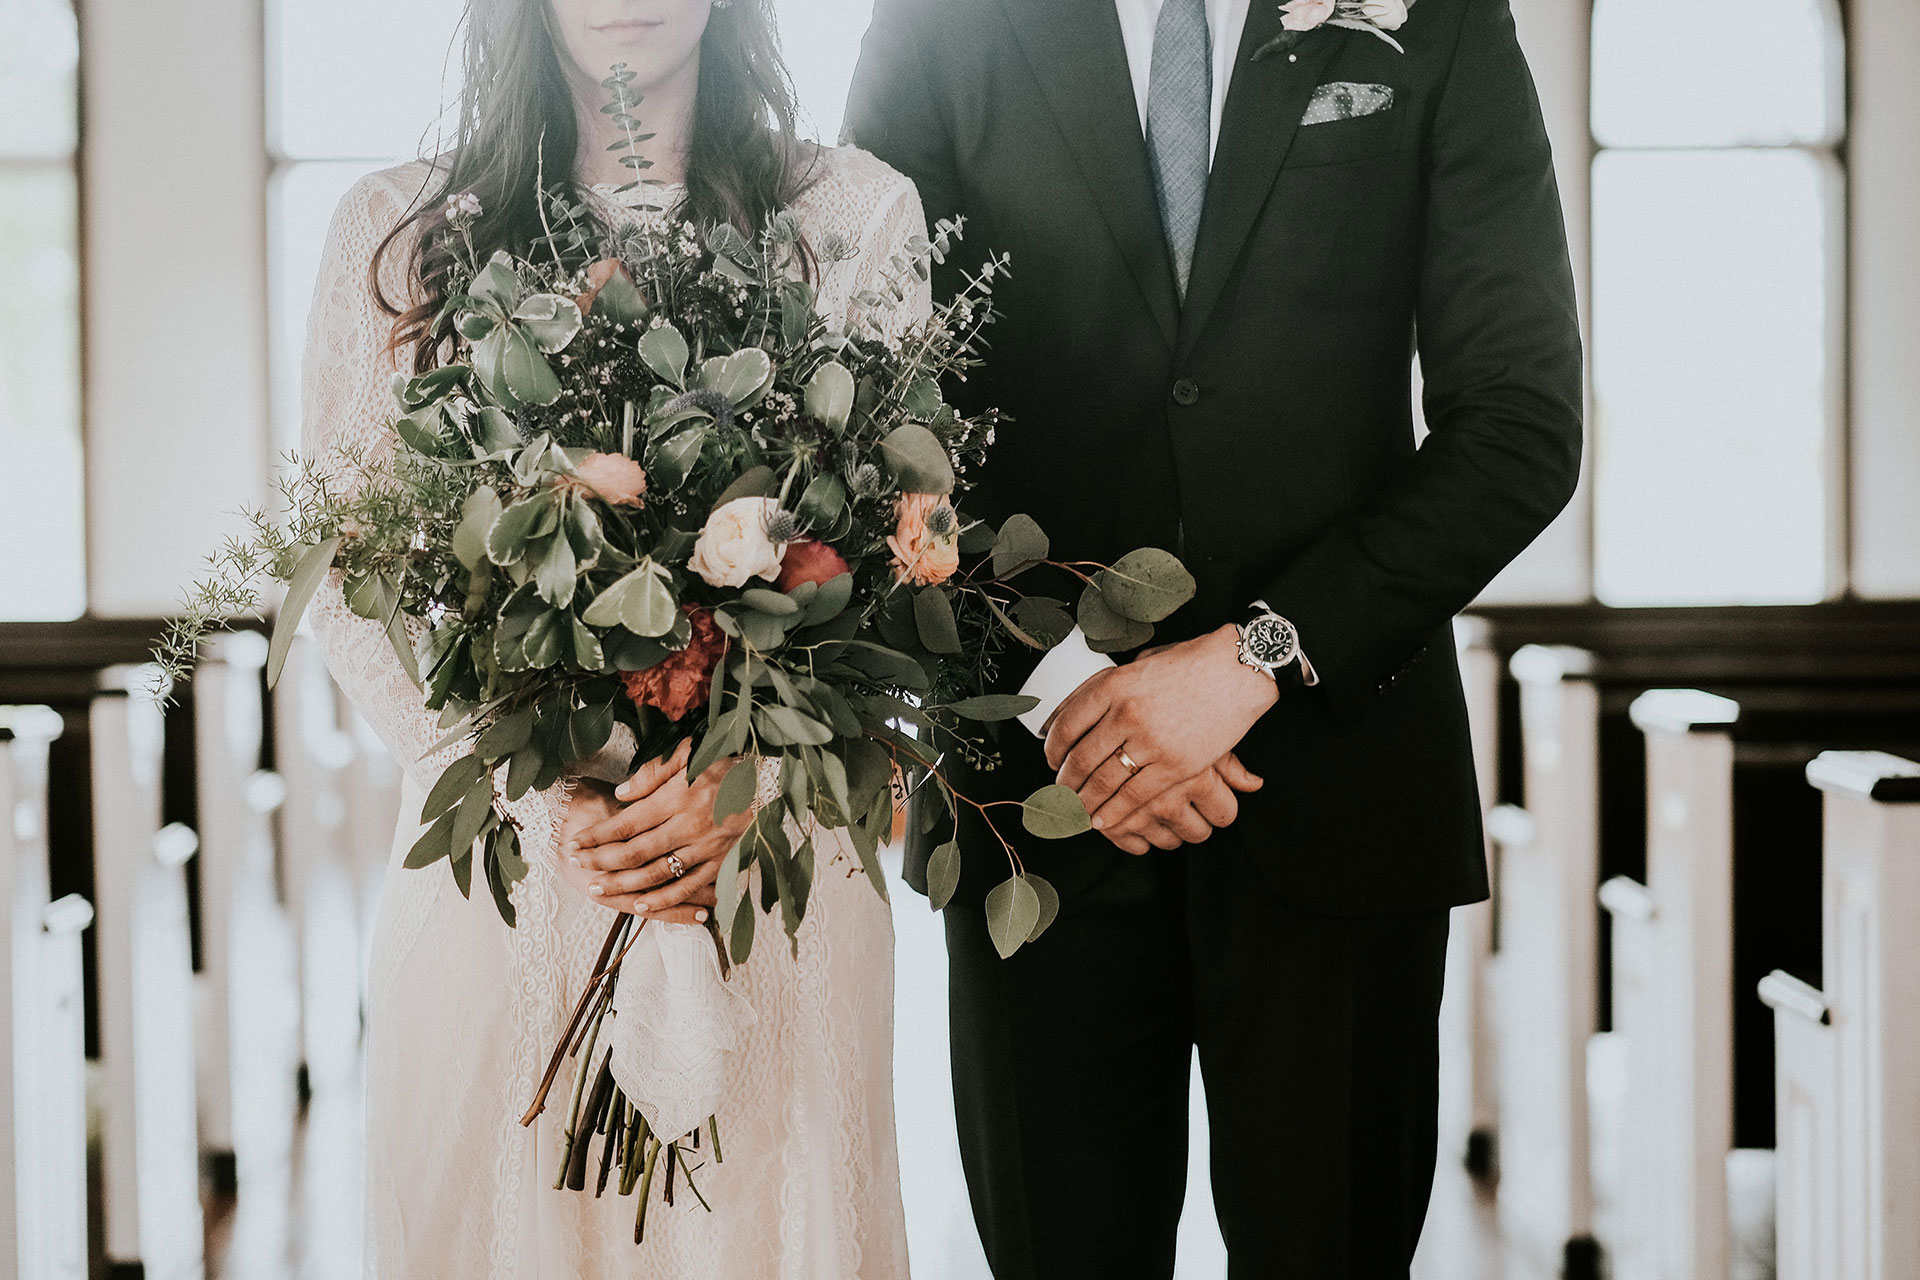 Bride and Groom Indoors with Beautiful Floral Arrangement